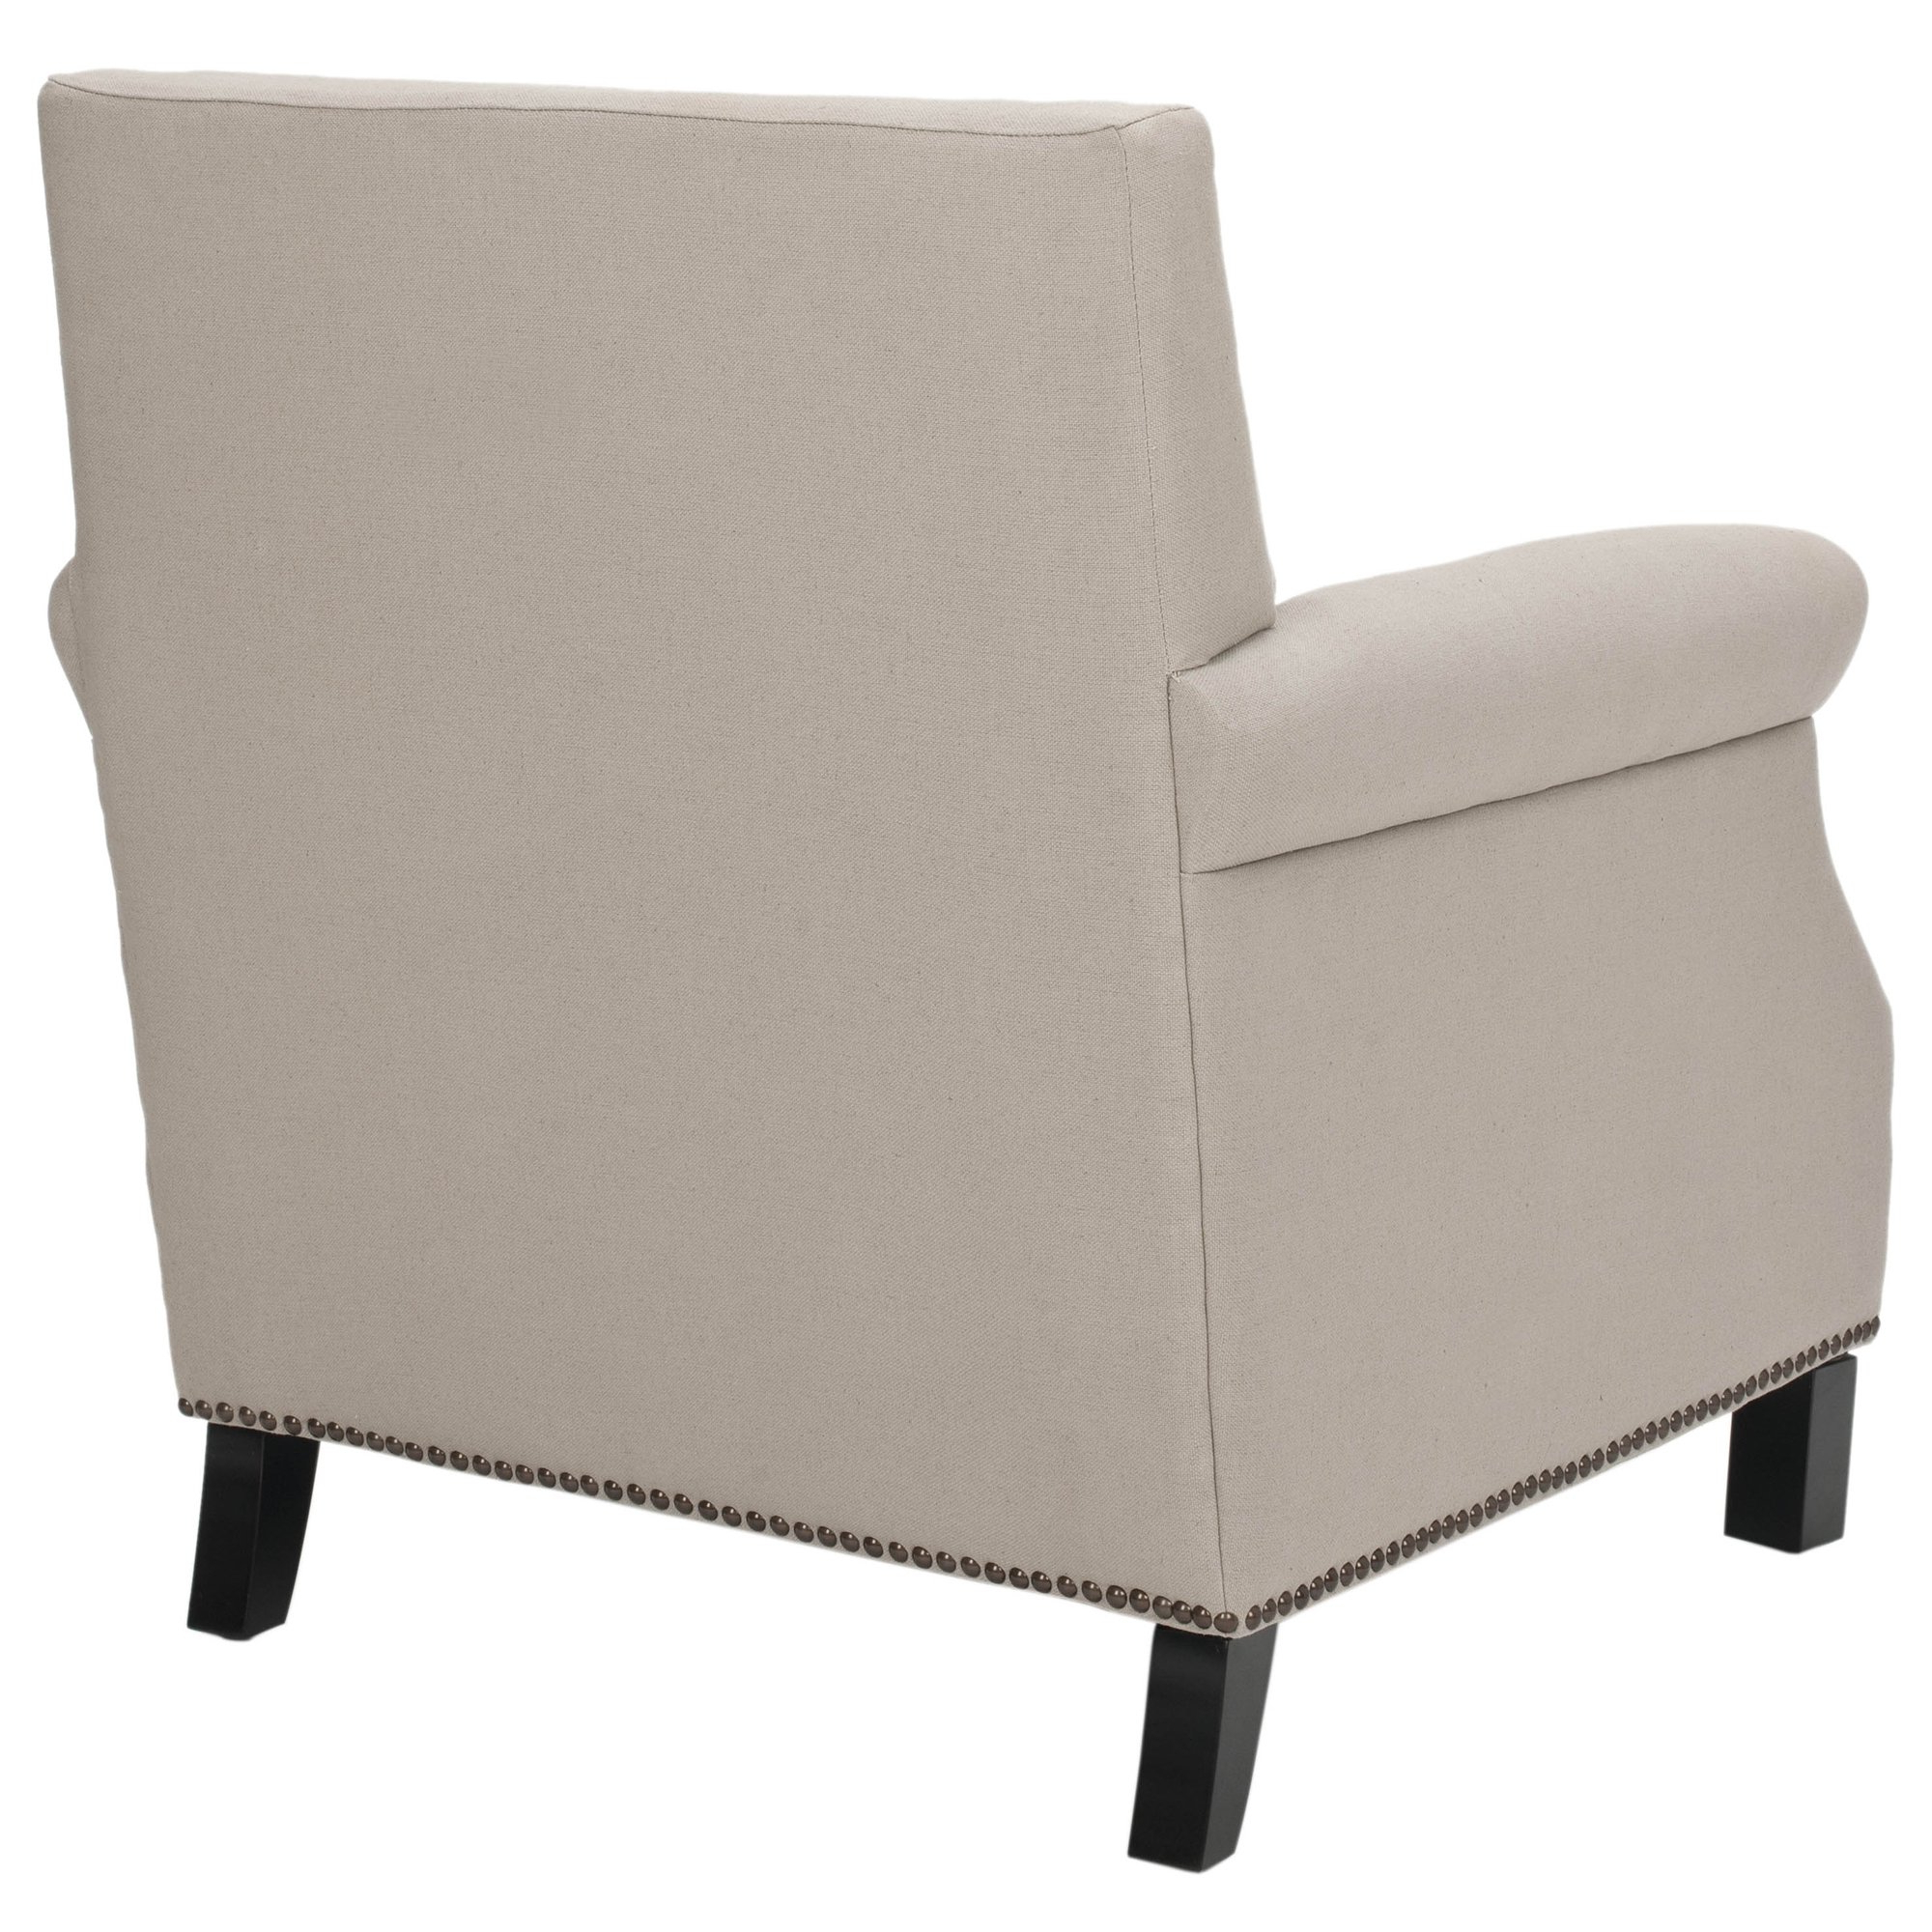 Shop Safavieh Mansfield Beige Club Chair – Free Shipping Today In Fashionable Mansfield Beige Linen Sofa Chairs (View 17 of 20)